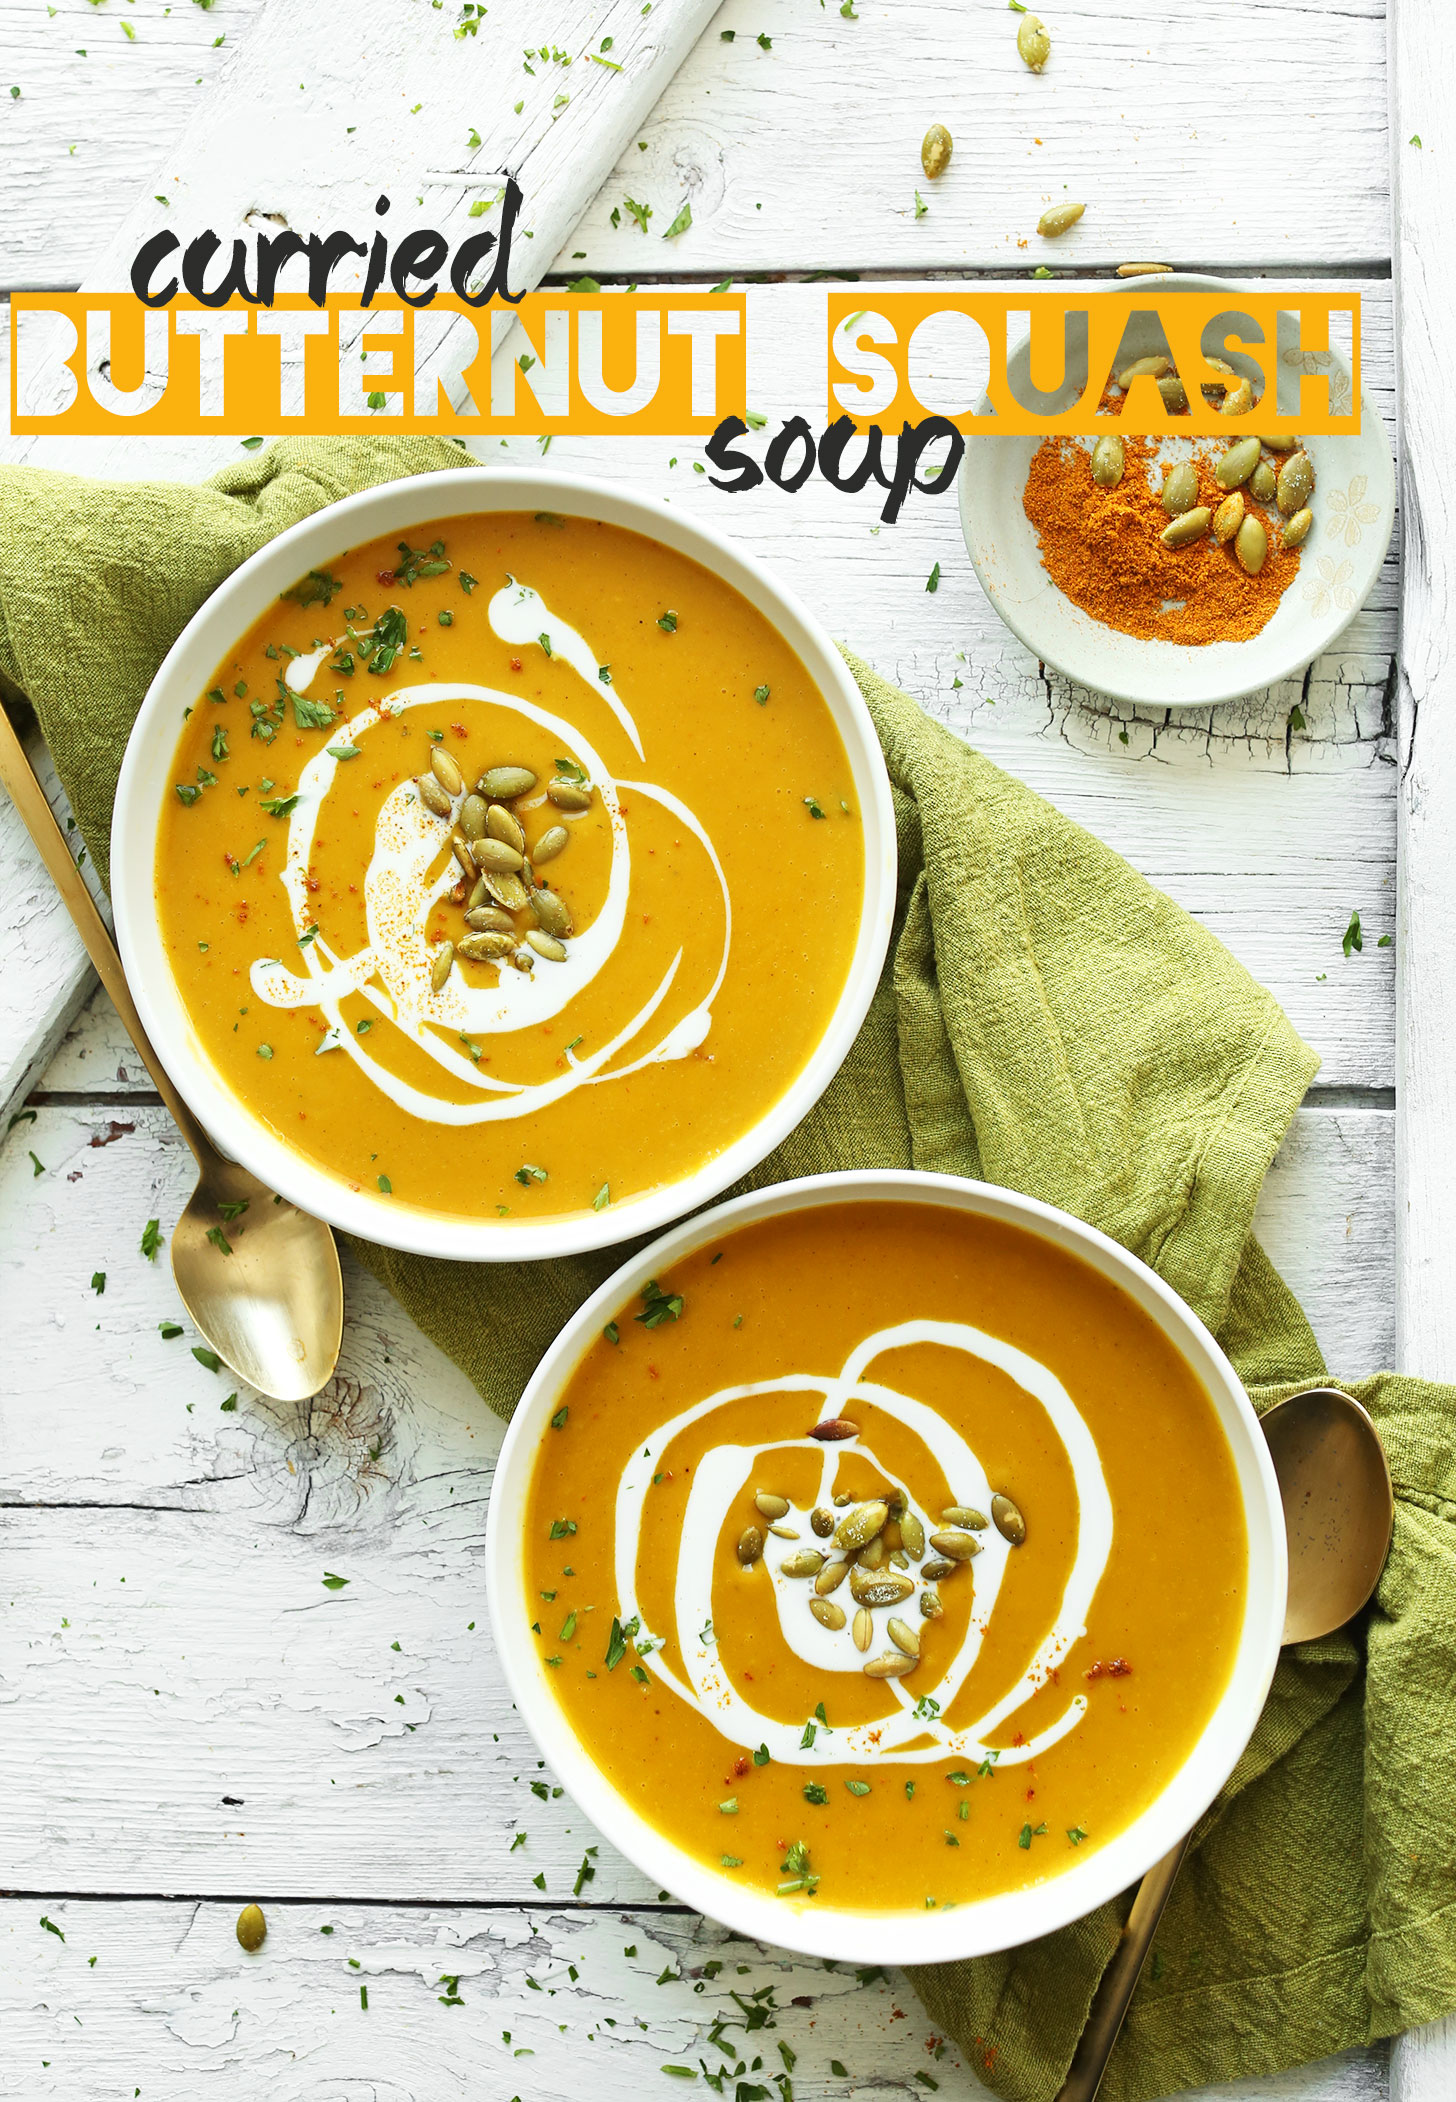 Bowls of our delicious Curried Butternut Squash Soup recipe perfect for fall